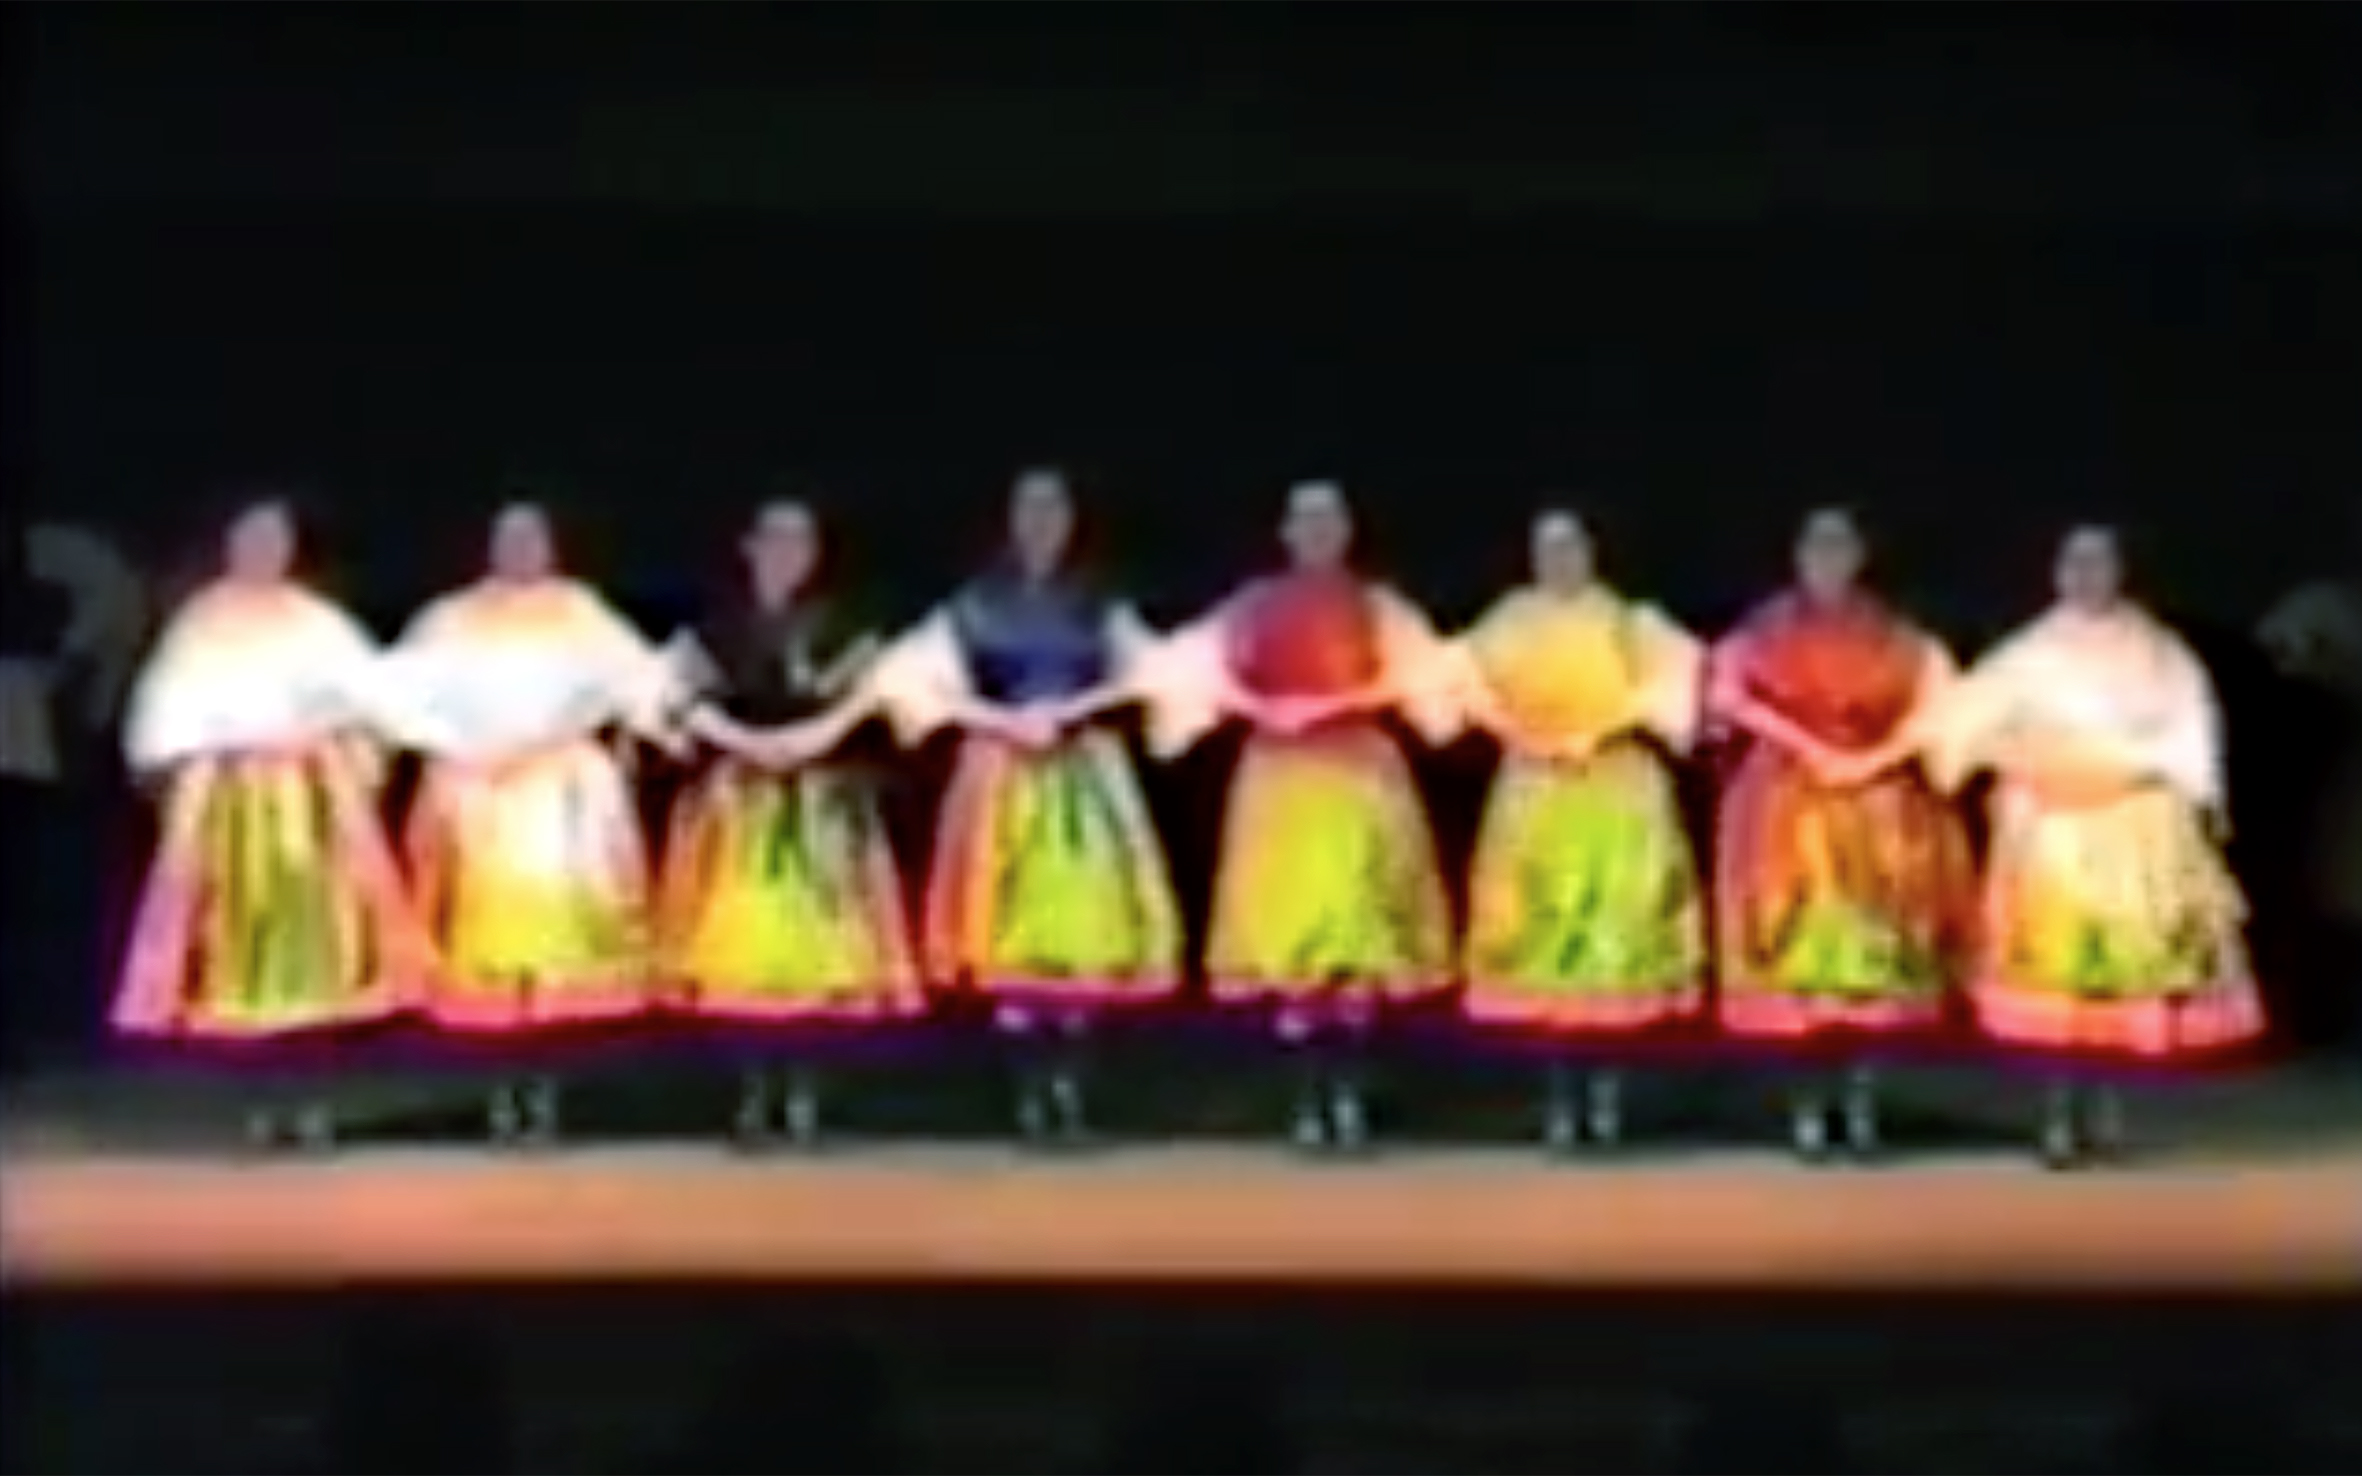 459.Karikázó / Hungary - Karikázó is a Hungarian folk dance traditionally performed by women. It is a circle dance in 4/4 time, traditionally to a cappella rather than instrumental music